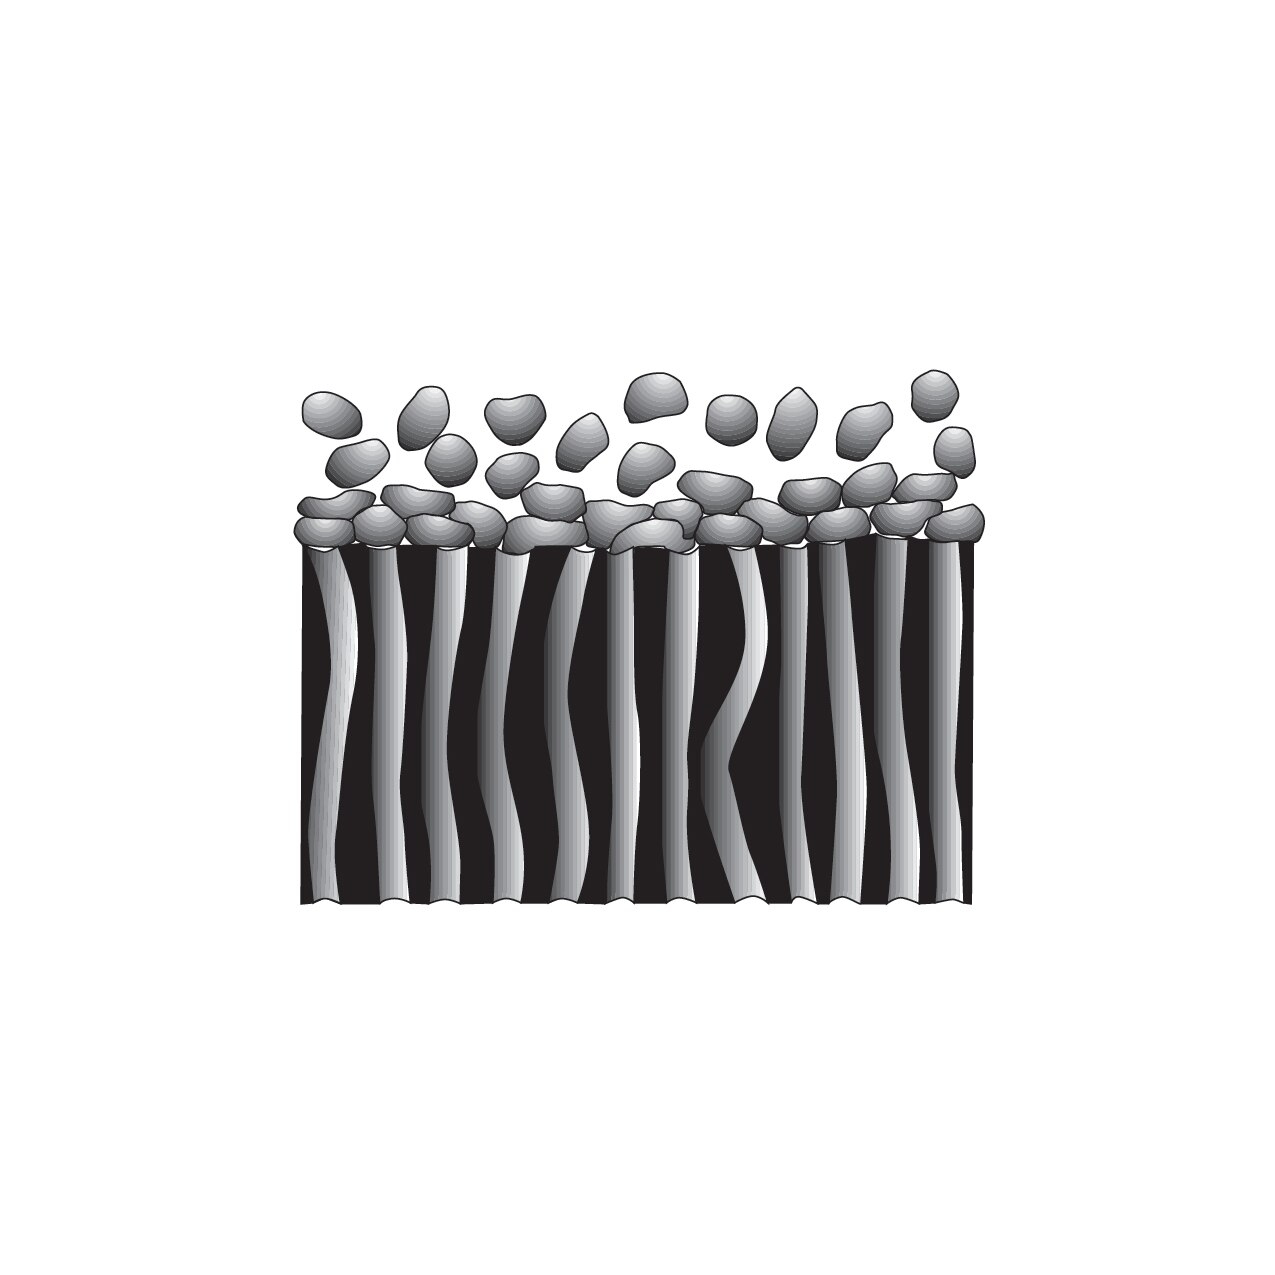 Cross section of membrane filter, particles retained on surface